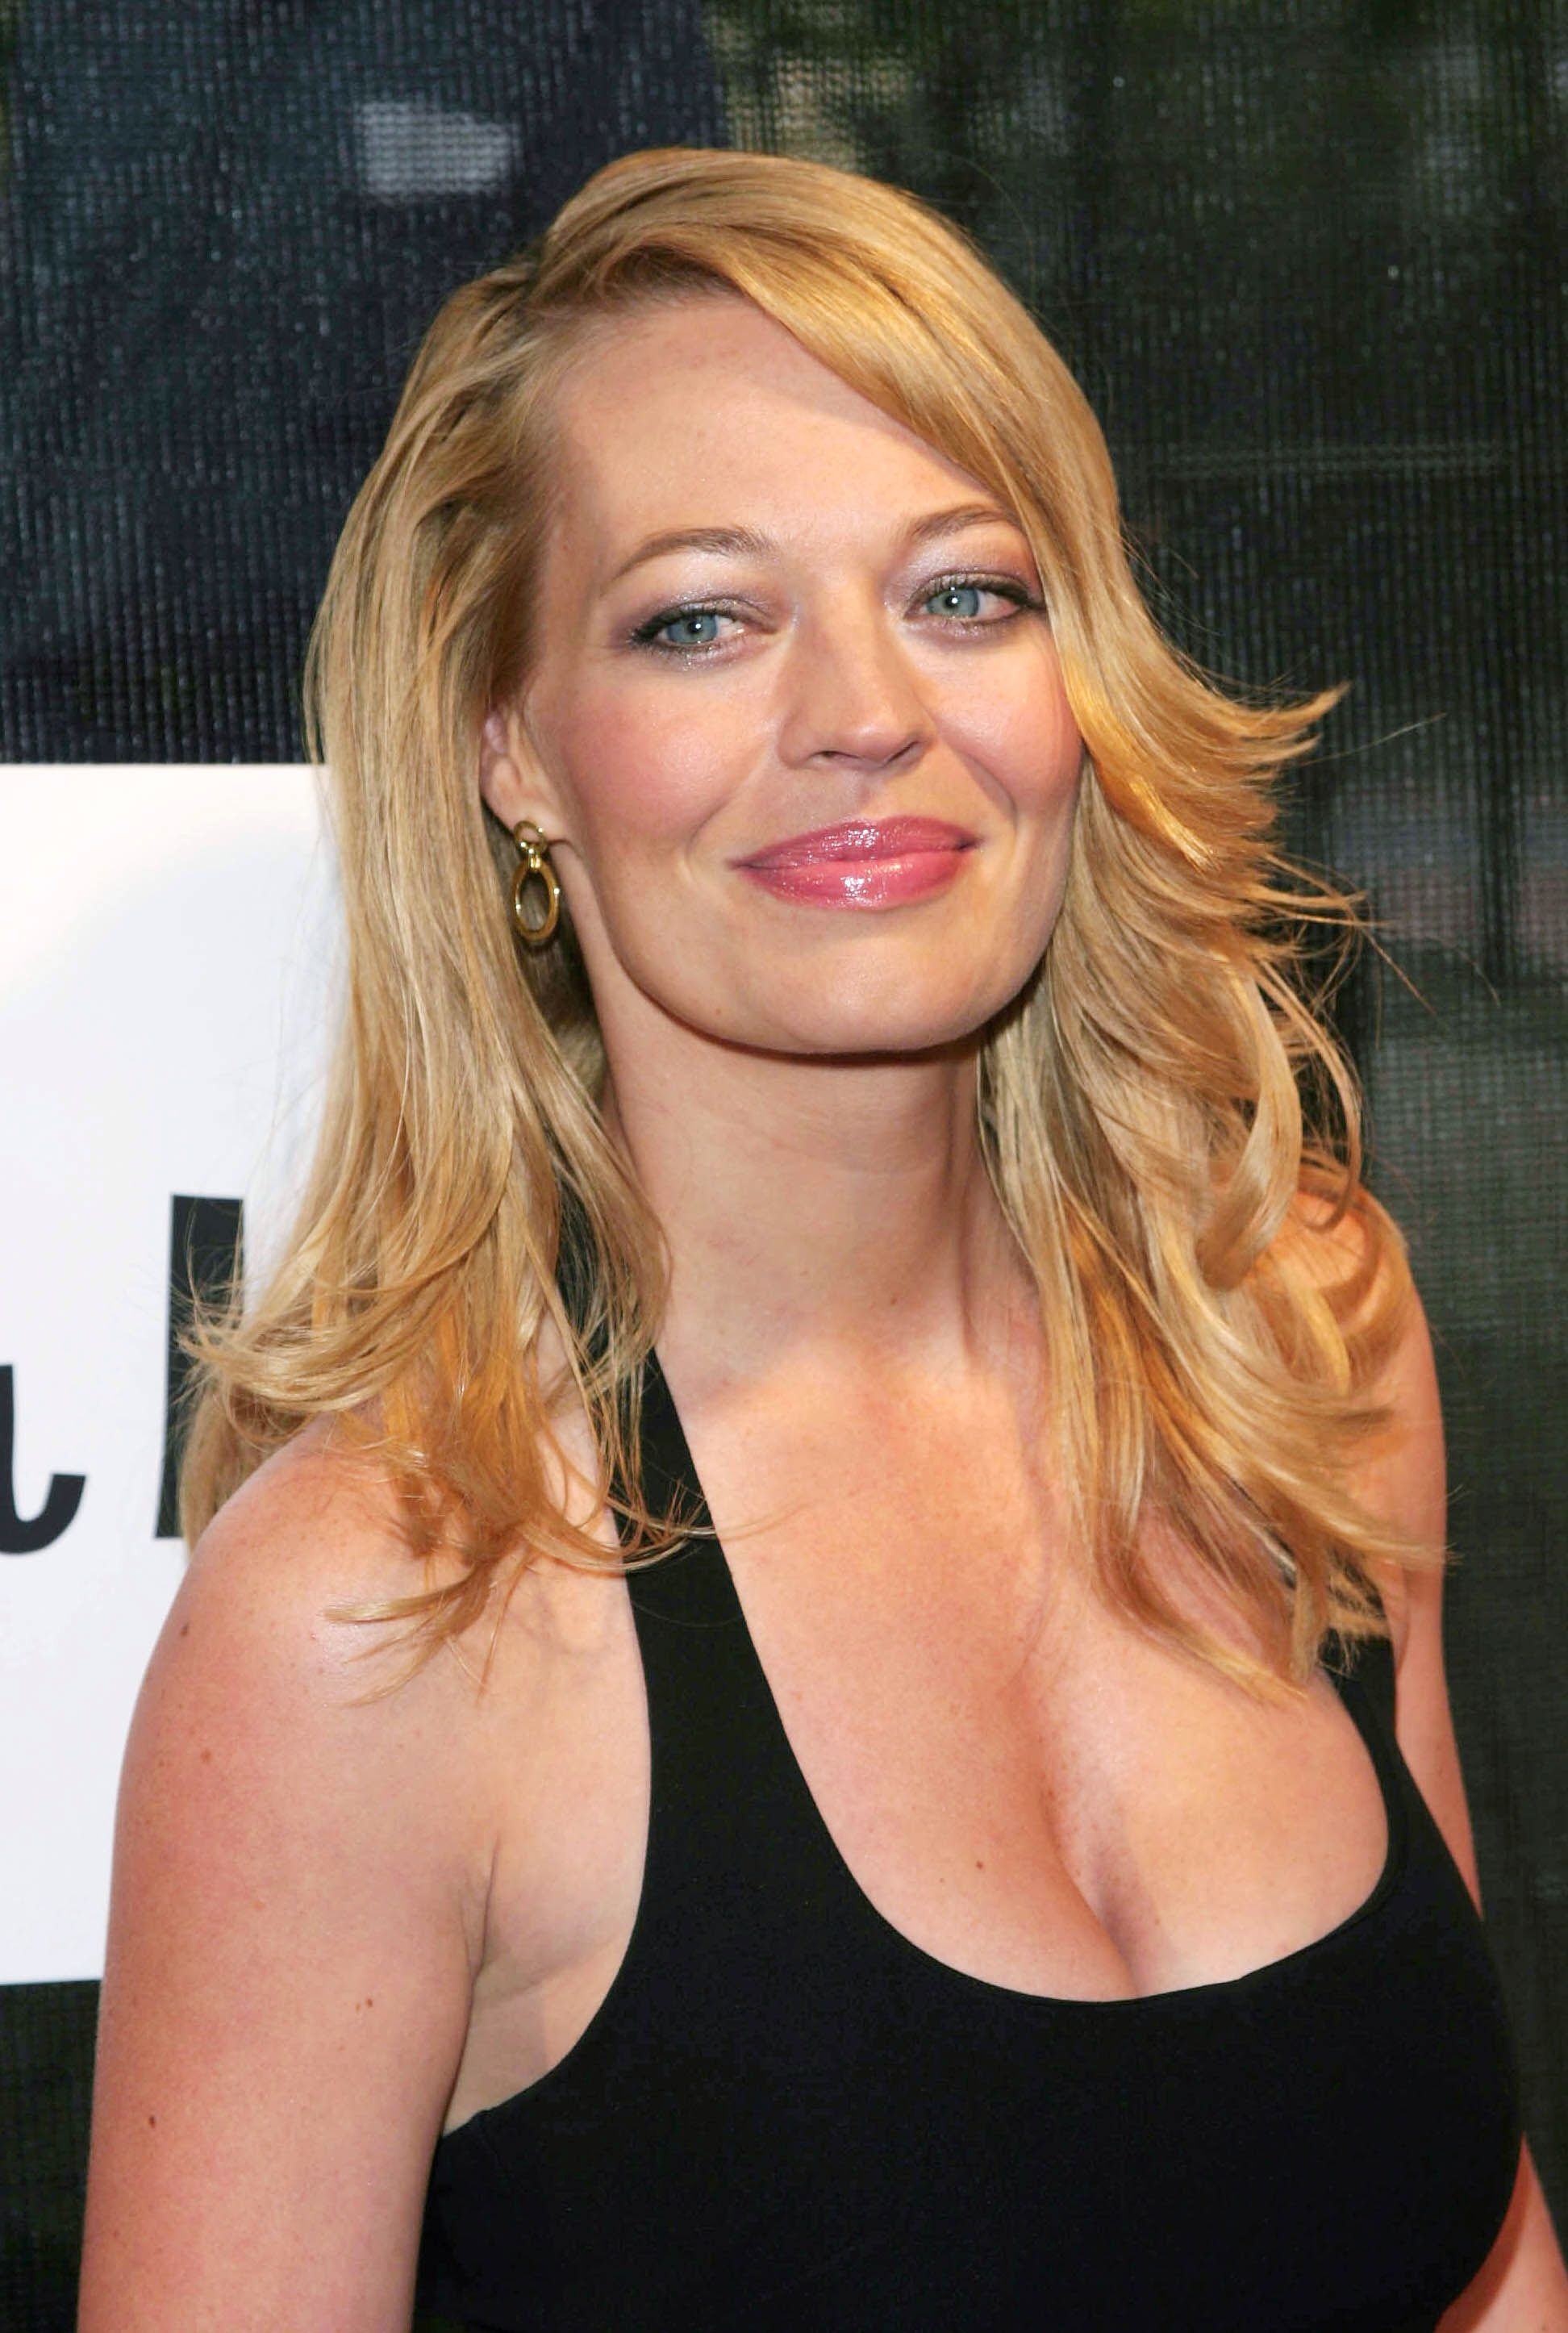 Porm celebrity hairstyles - Actresses